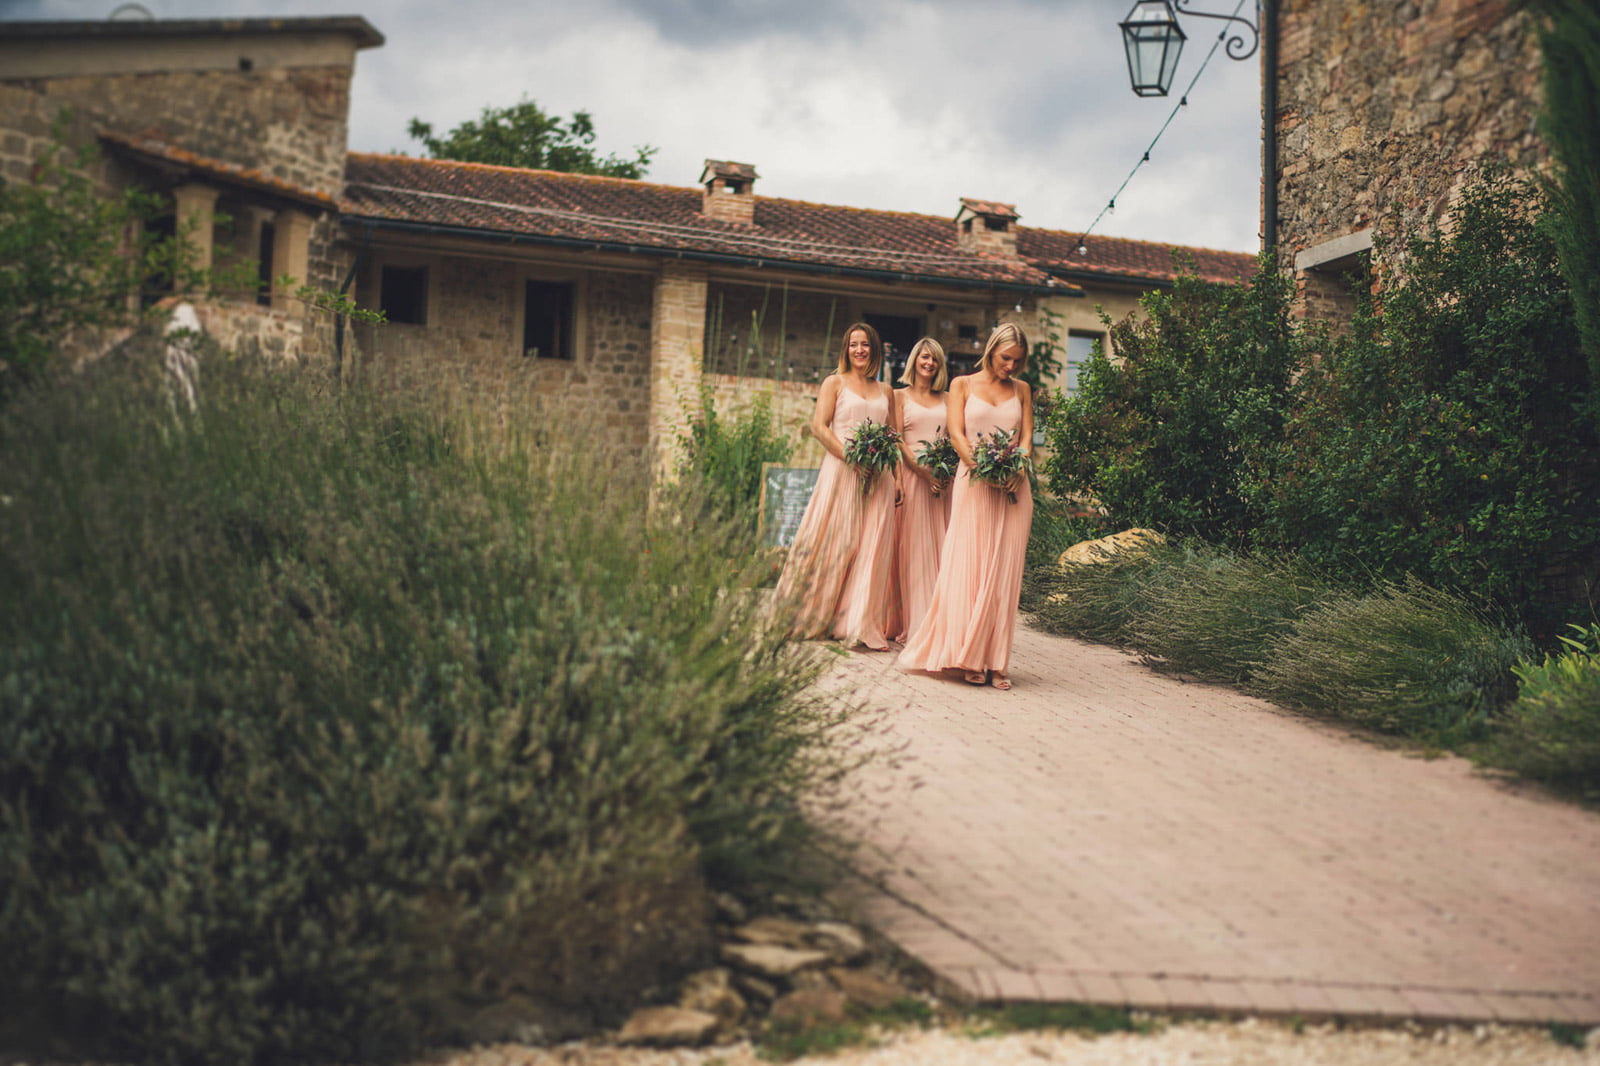 044-wedding-tuscany-san-galgano-federico-pannacci-photographer